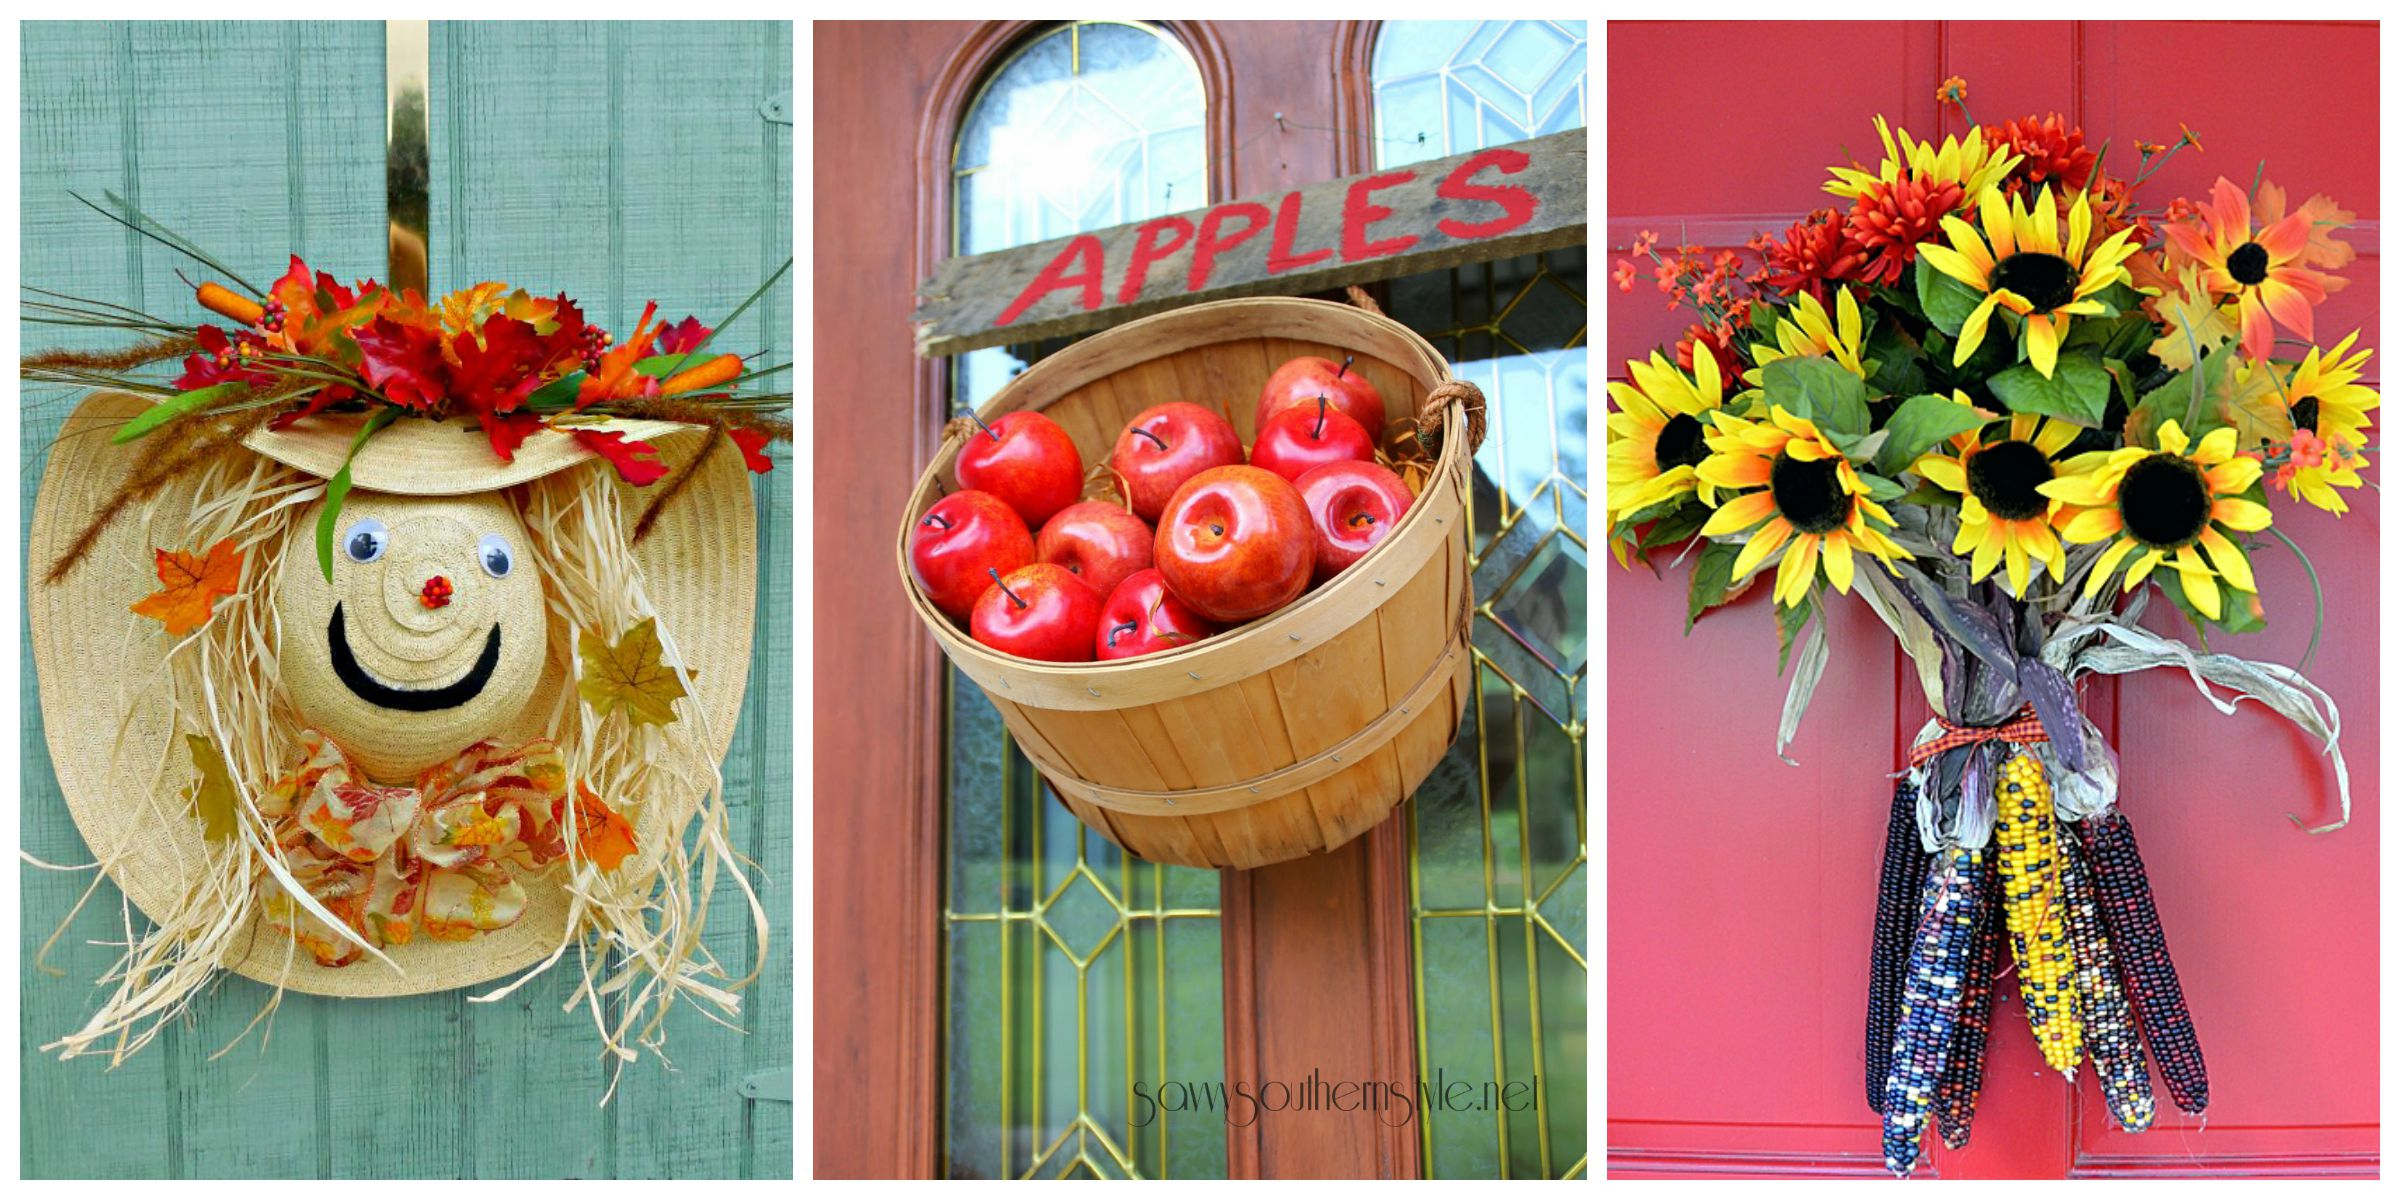 Christmas Decor For Bedroom Door : Fall door decorations ideas for decorating your front